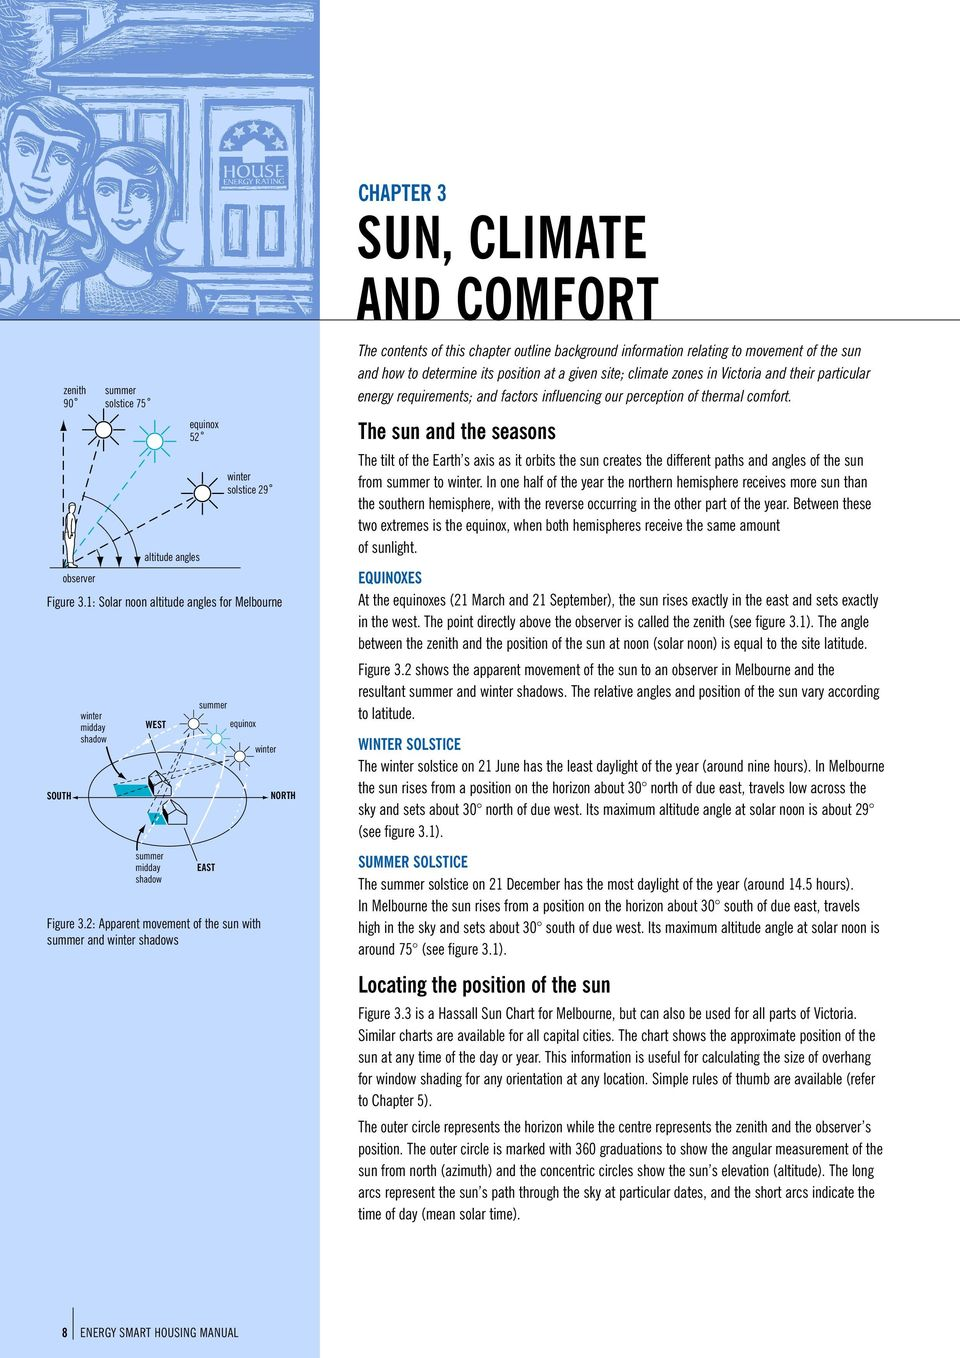 2: Apparent movement of the sun with summer and winter shadows winter NORTH CHAPTER 3 SUN, CLIMATE AND COMFORT The contents of this chapter outline background information relating to movement of the